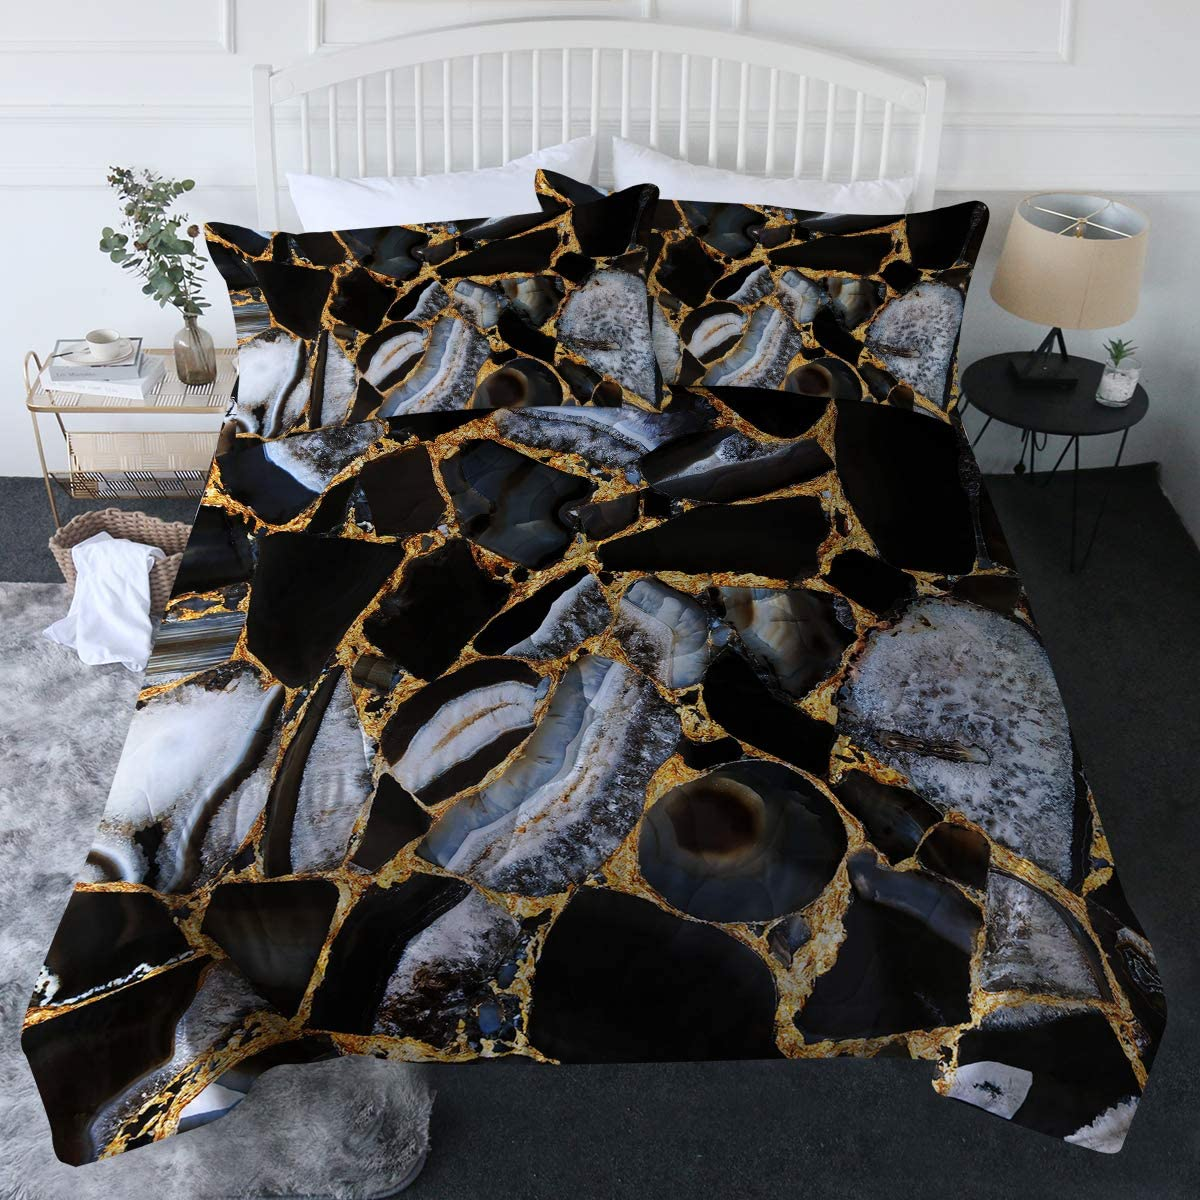 Amazon Com Blessliving 3 Piece Marble Comforter Set With Pillow Shams Blue Gold Marble Bedding Set With 3d Printed Designs Reversible Comforter Full Queen Size Soft Comfortable Machine Washable Home Kitchen